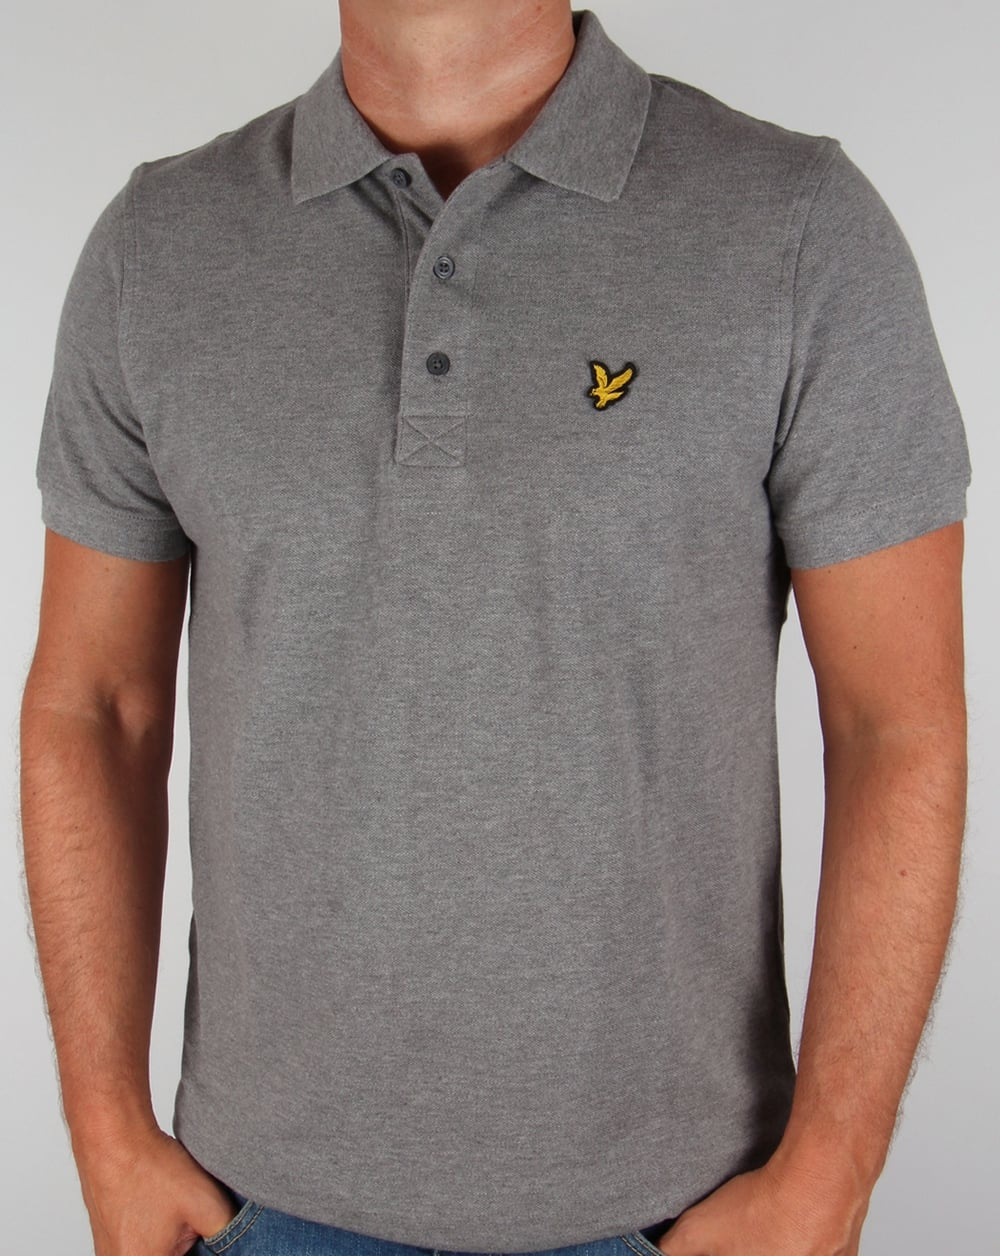 Lyle and scott polo shirt mid grey marl men 39 s for Lyle and scott shirt sale